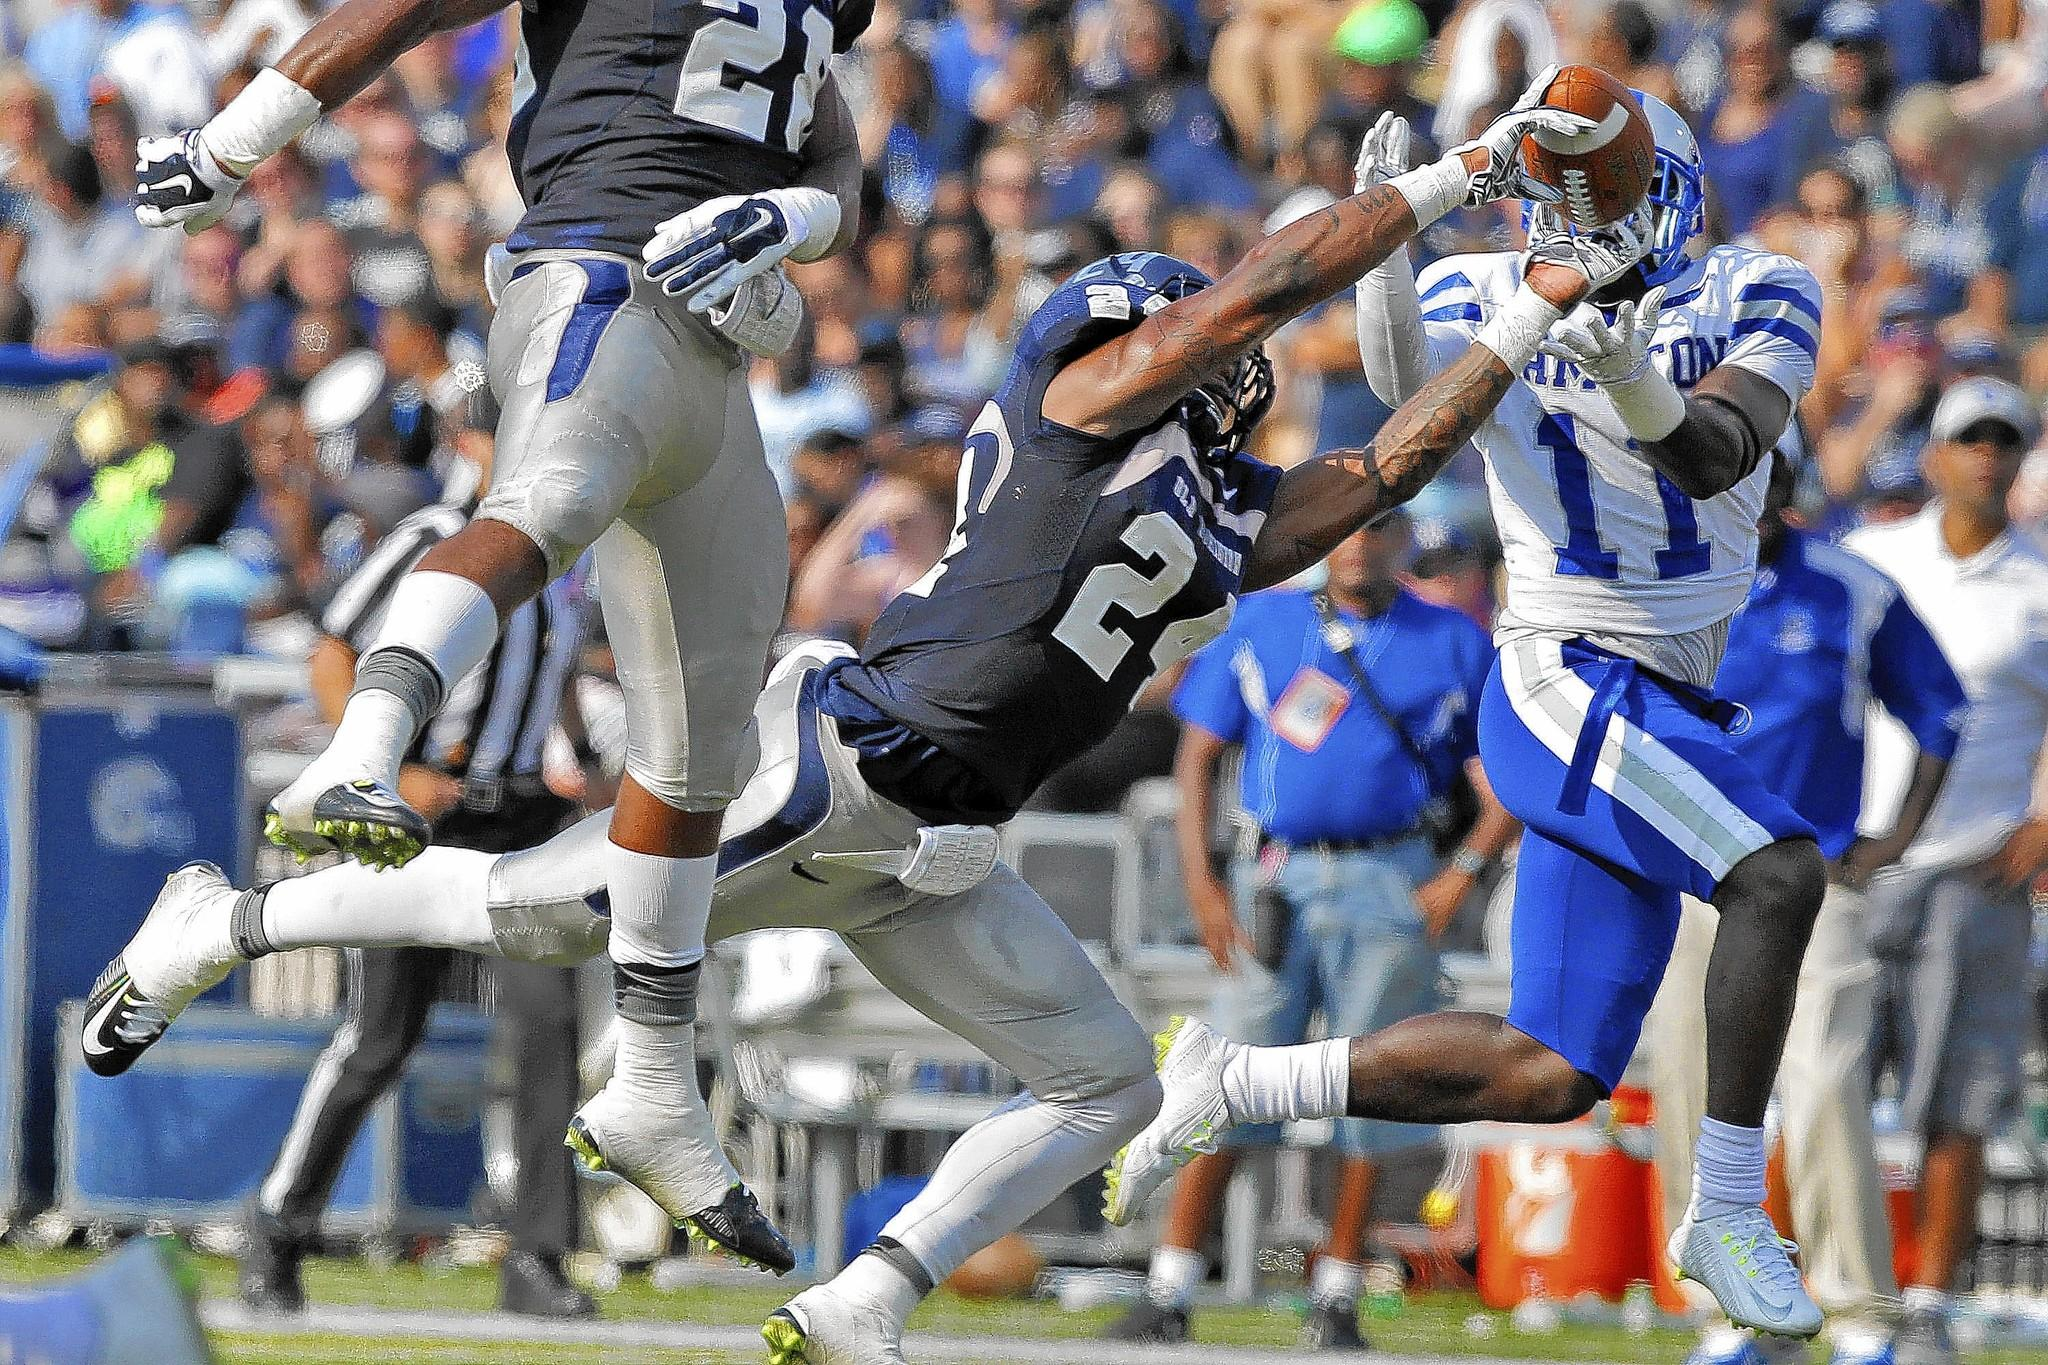 Old Dominion University's Fellonte Misher, center, intercepts a ball intended for Hampton University's Rayshad Riddick during Saturday's game at Foreman Field.